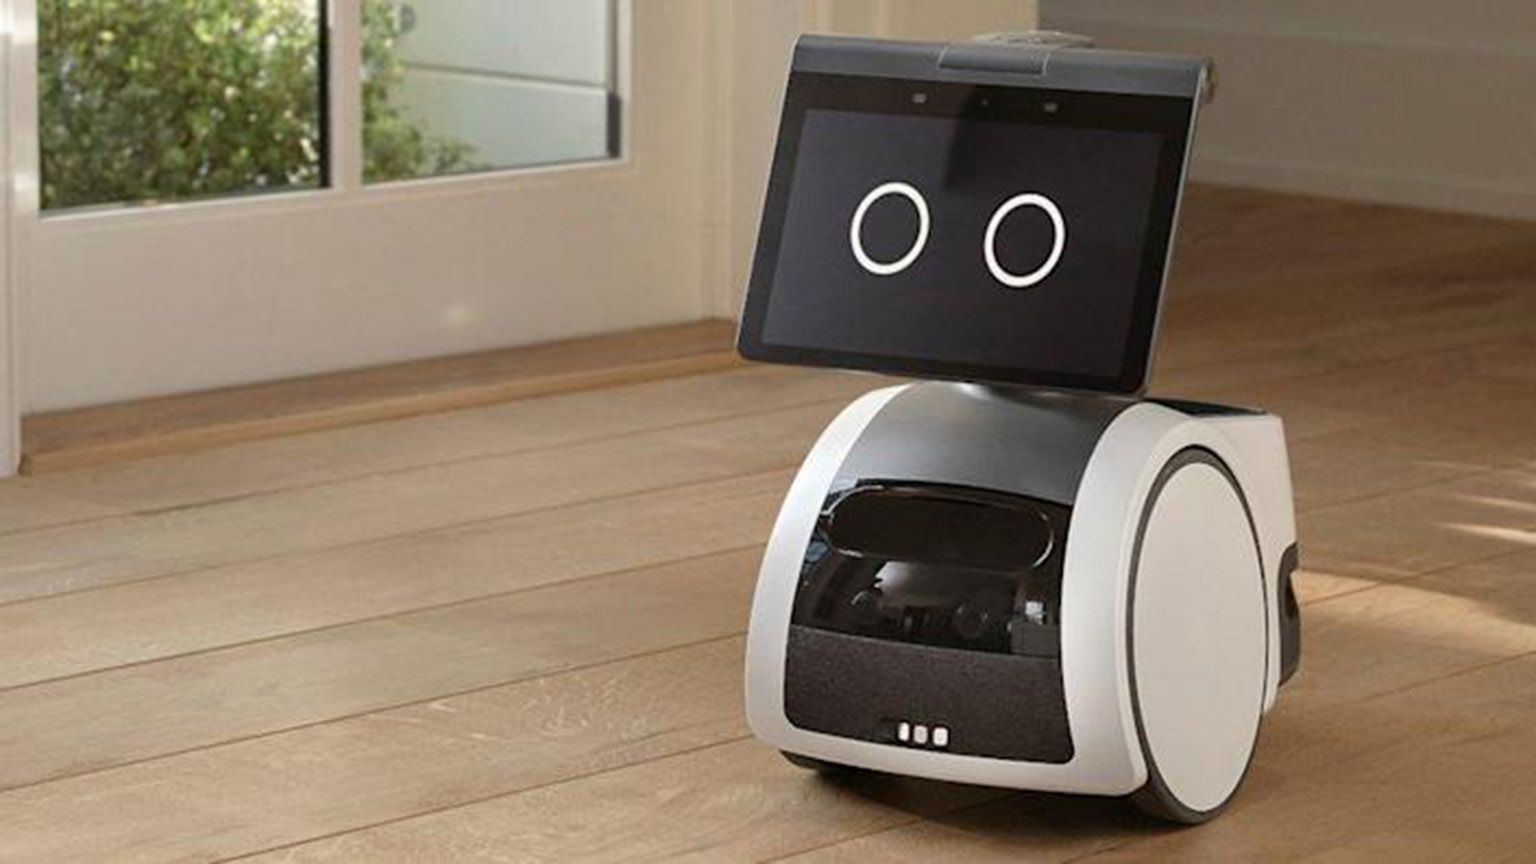 Amazing house assistant! Amazon unveils 'Astro,' the household robot photo from Yahoo News